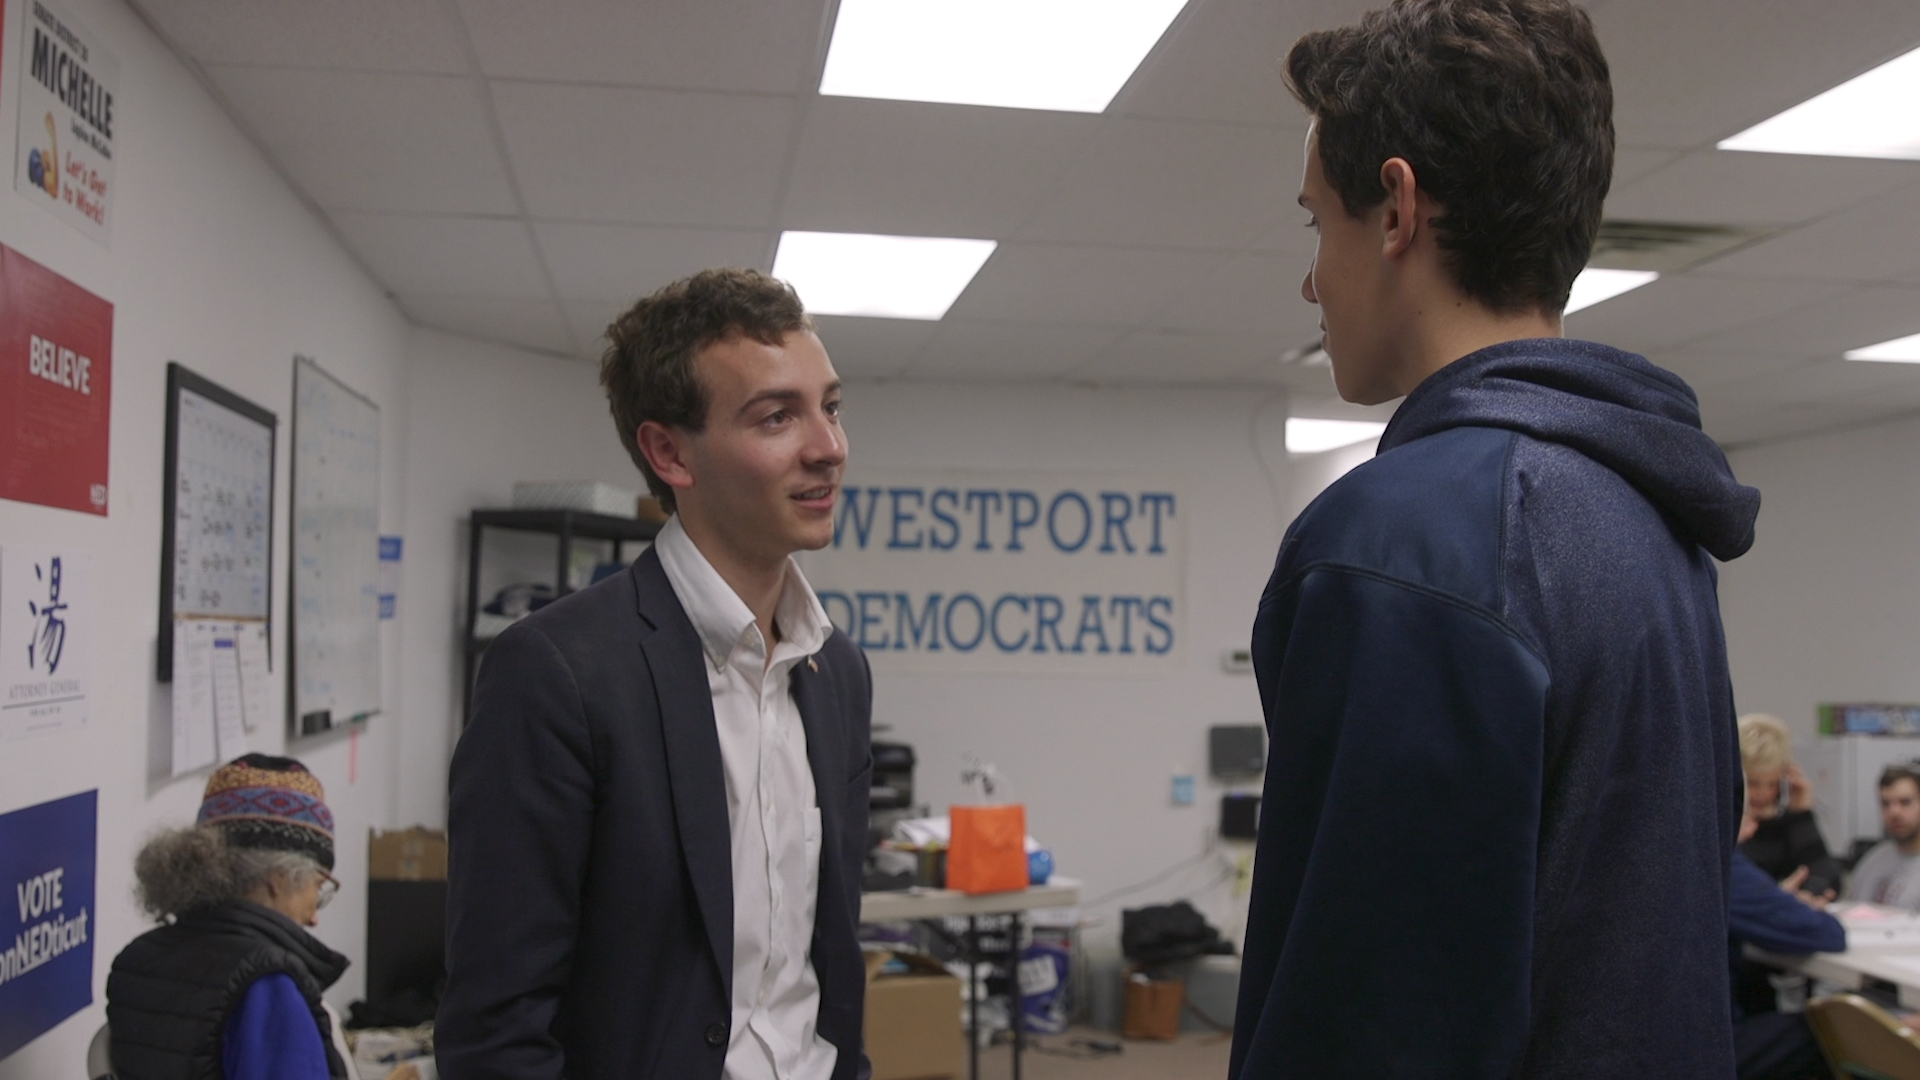 22-year-old Connnecticut state Senate candidate Will Haskell speaks with a campaign volunteer during a phone bank in Westport, CT on Oct. 30, 2018.